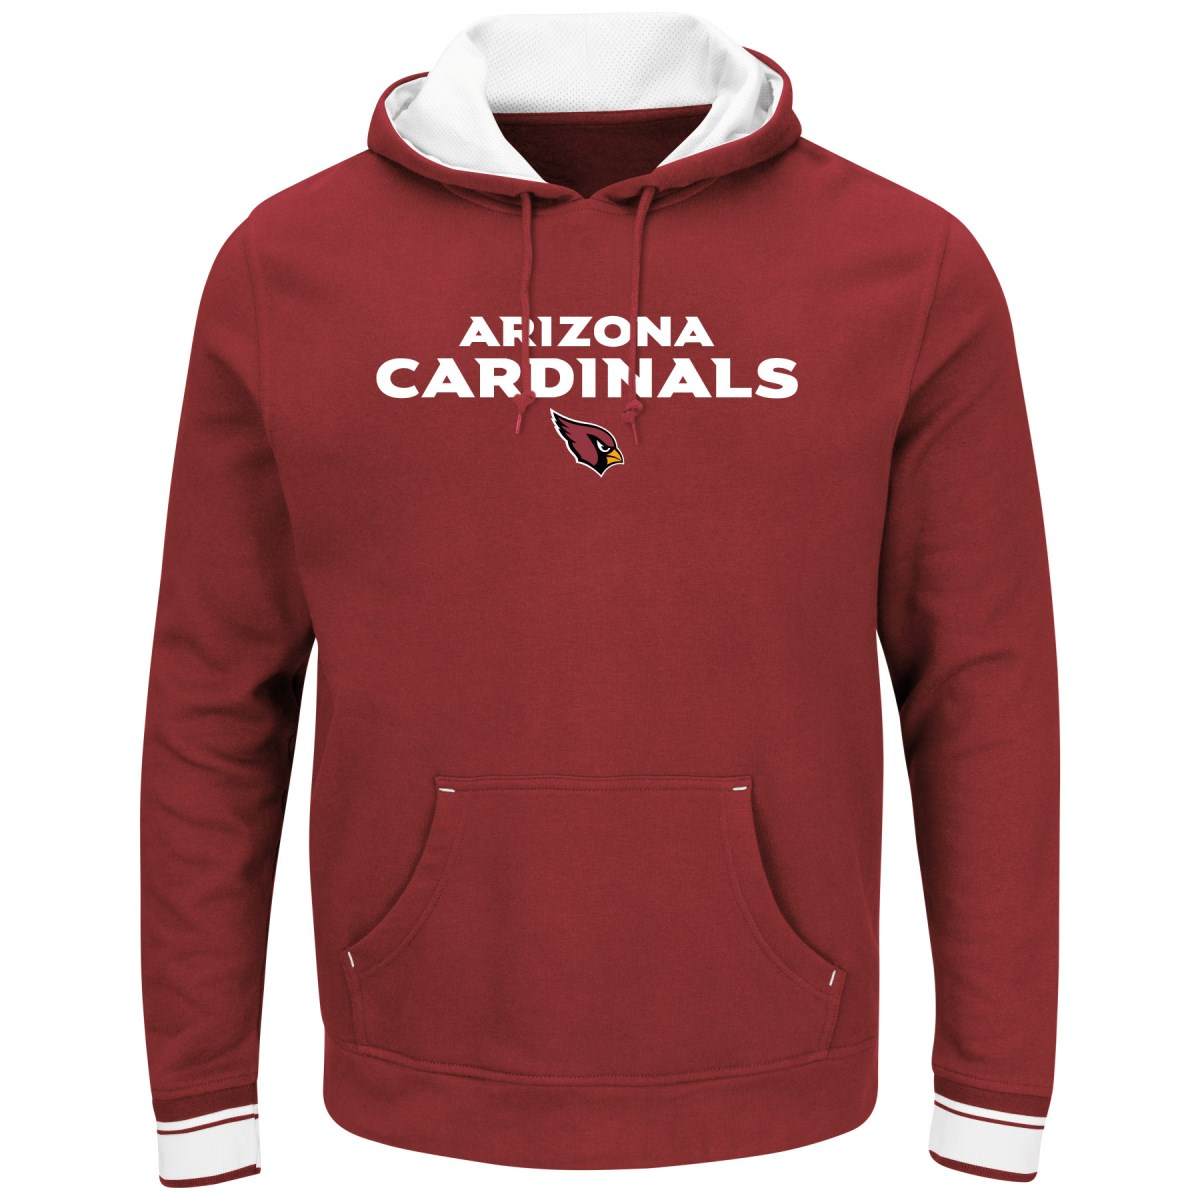 "Arizona Cardinals Majestic NFL ""Championship"" Men's Pullover Hooded Sweatshirt"